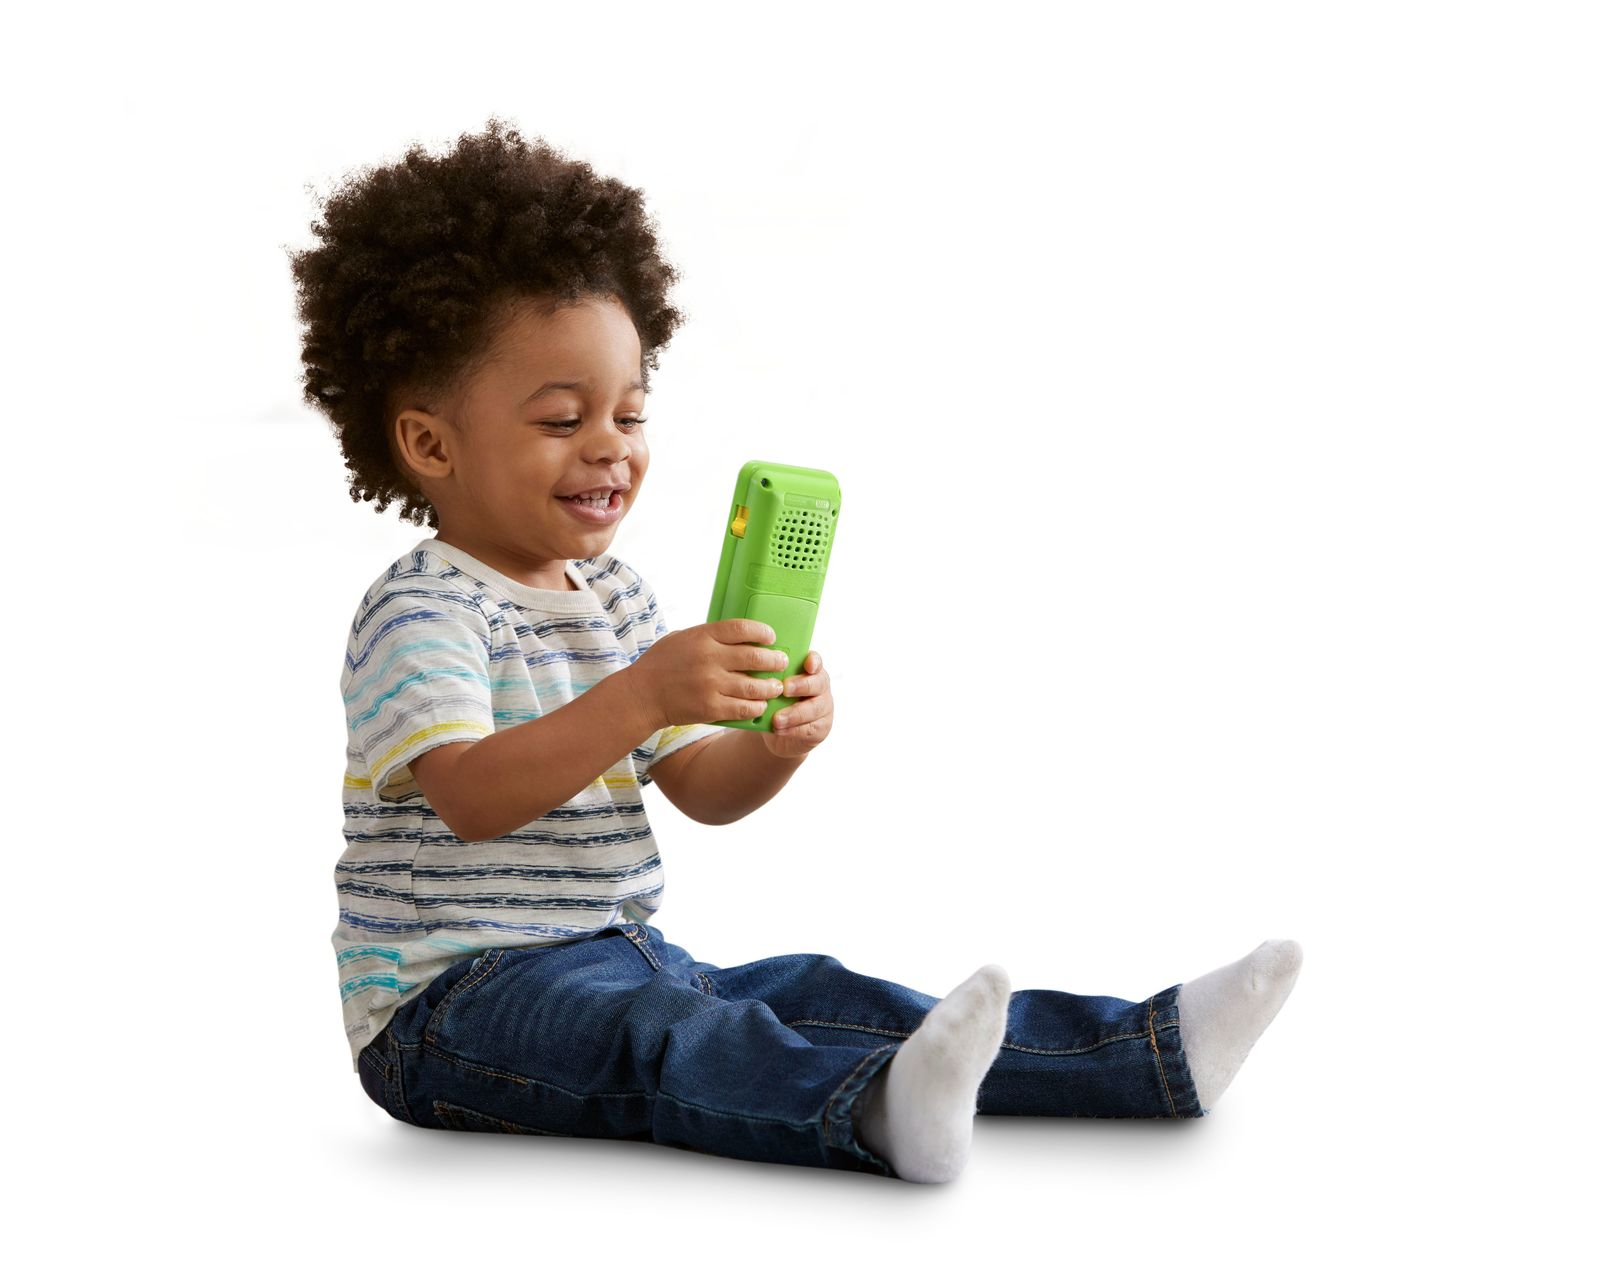 Leapfrog: Chat & Count Smart Phone - Green image